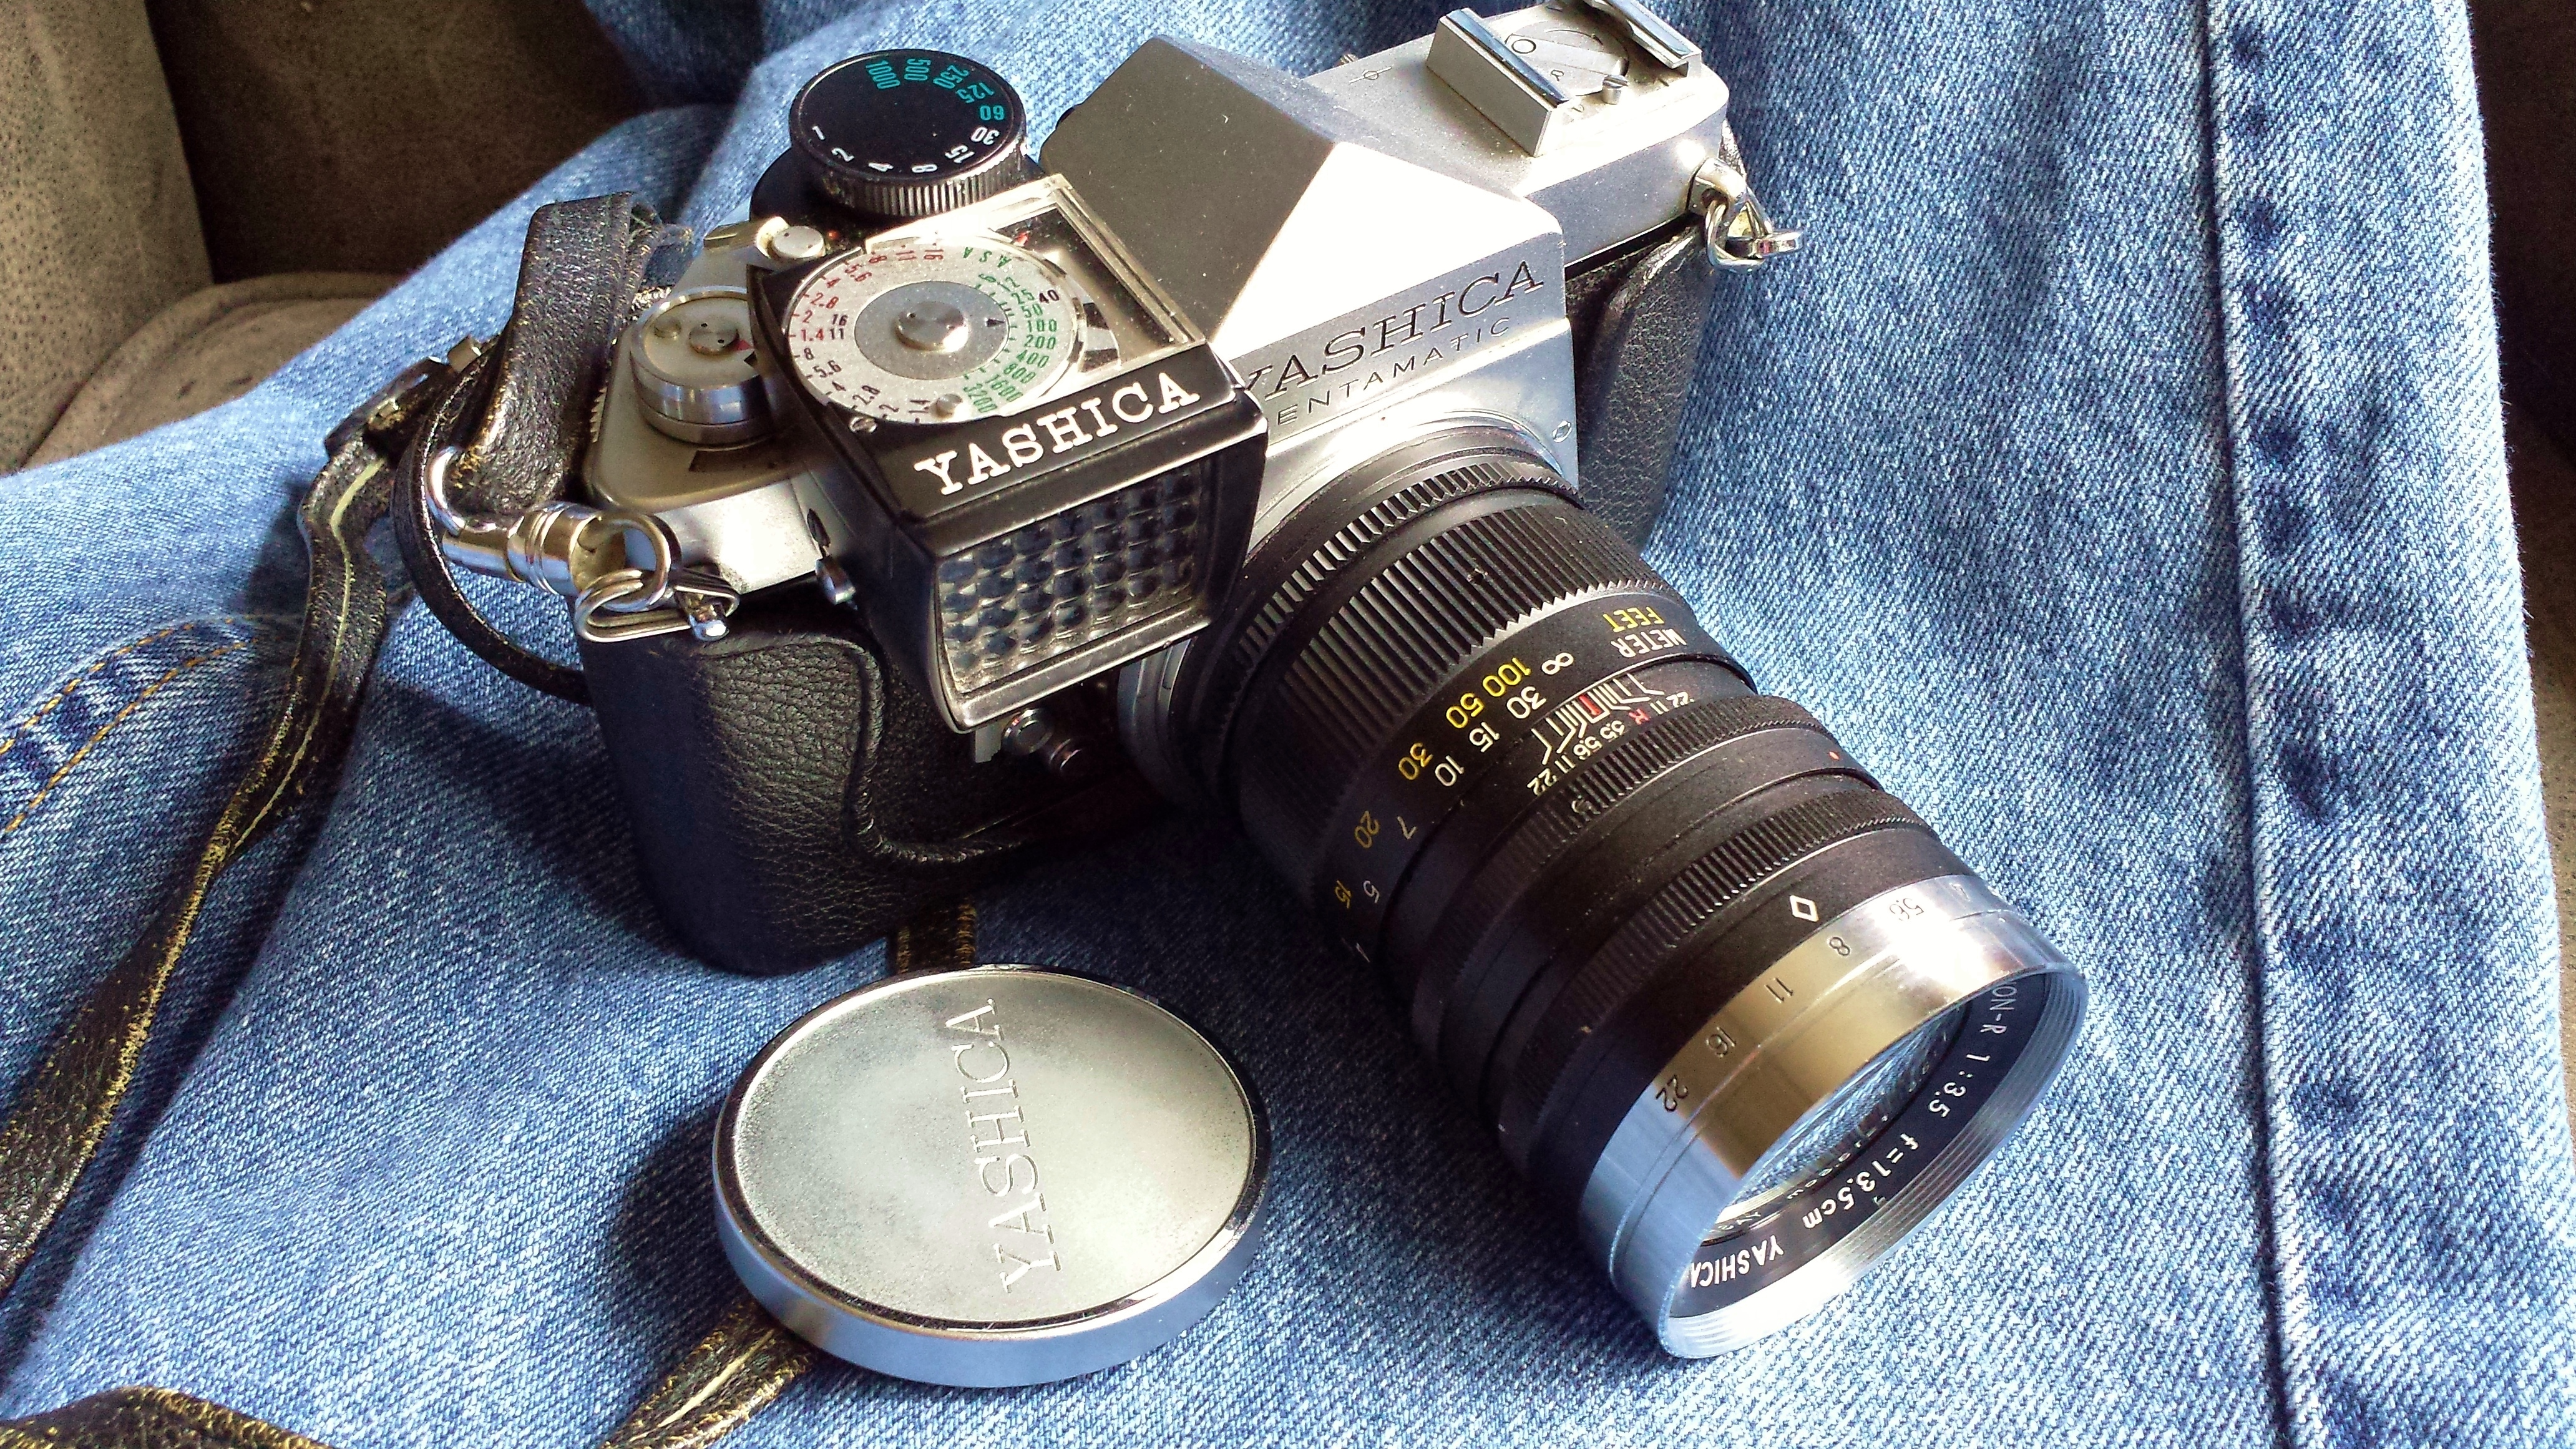 Yashica PS on jeans